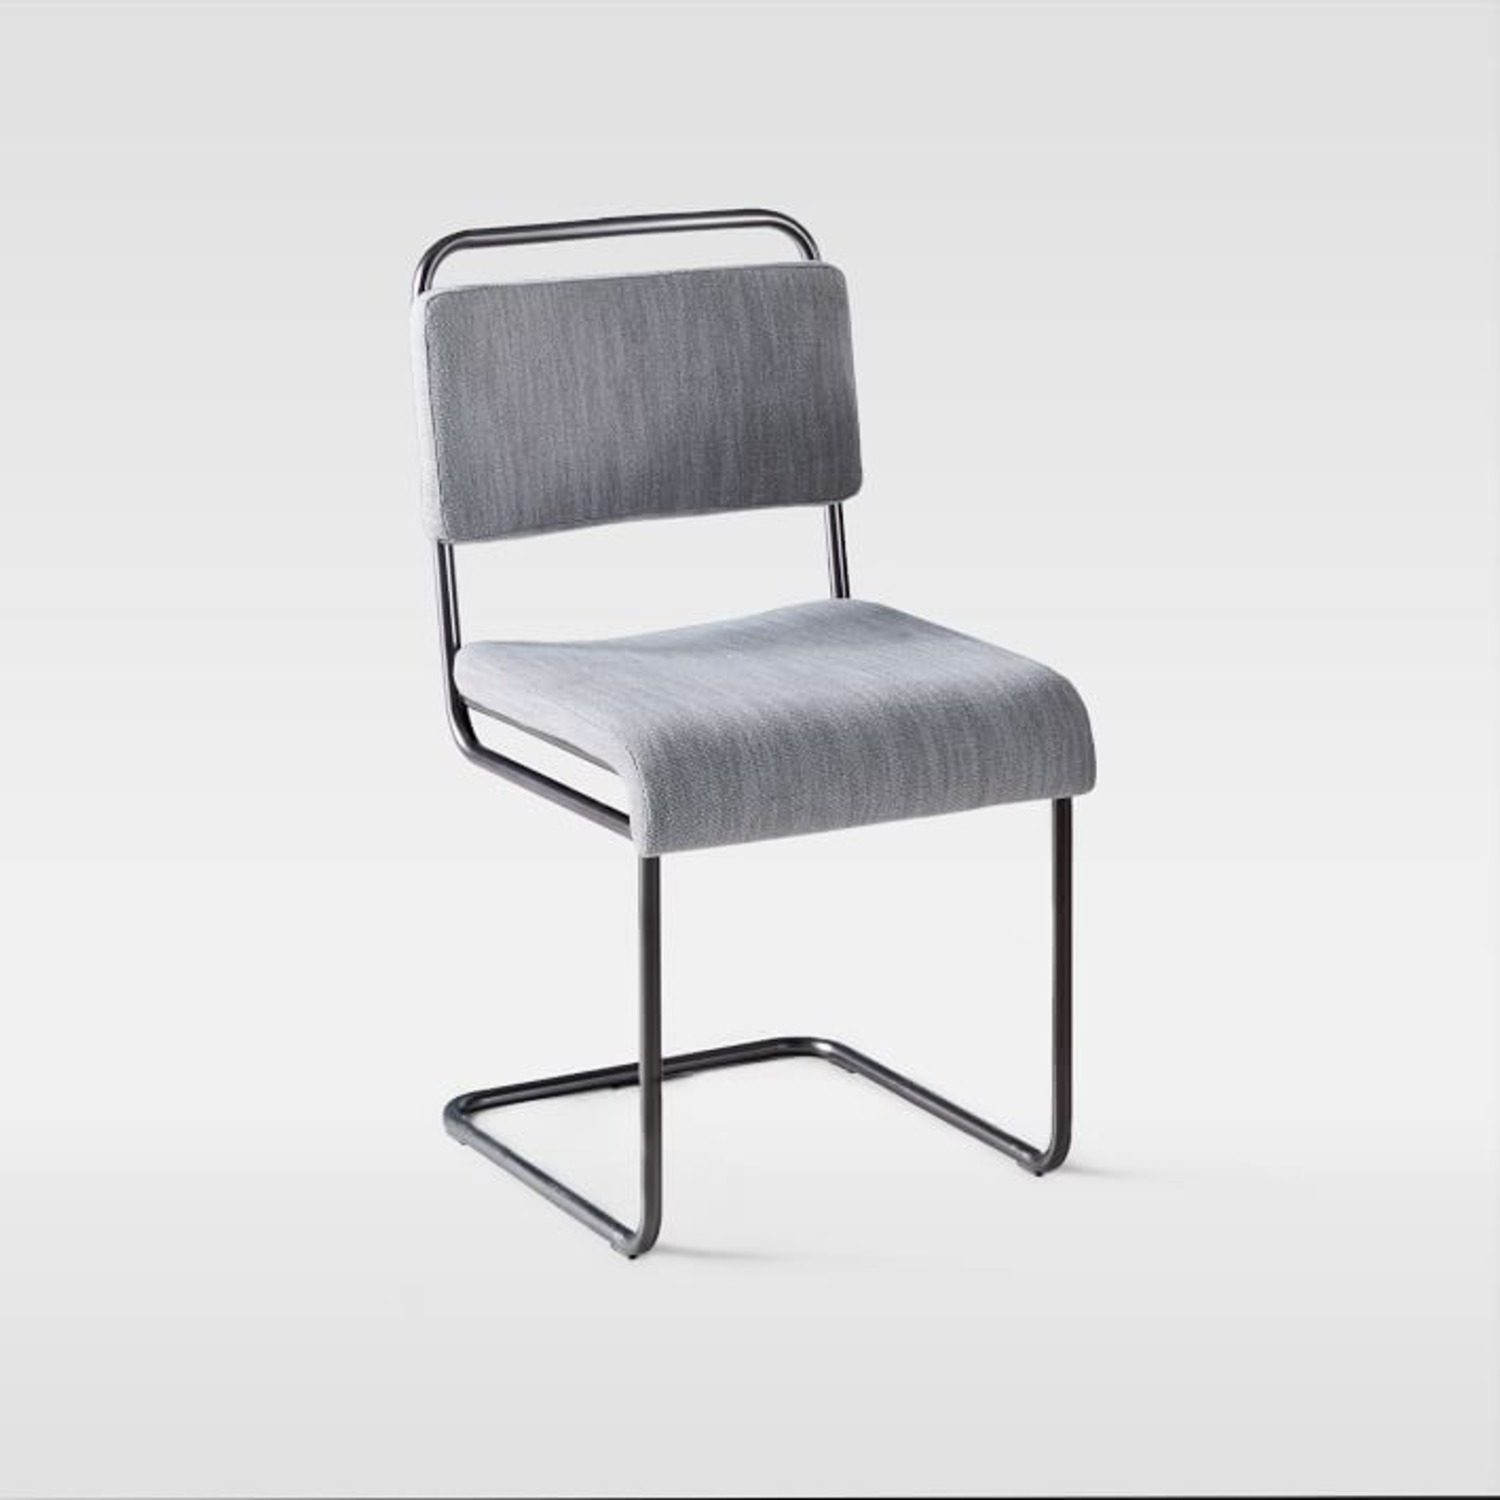 West Elm Industrial Cantilever Upholstered Chair - image-1